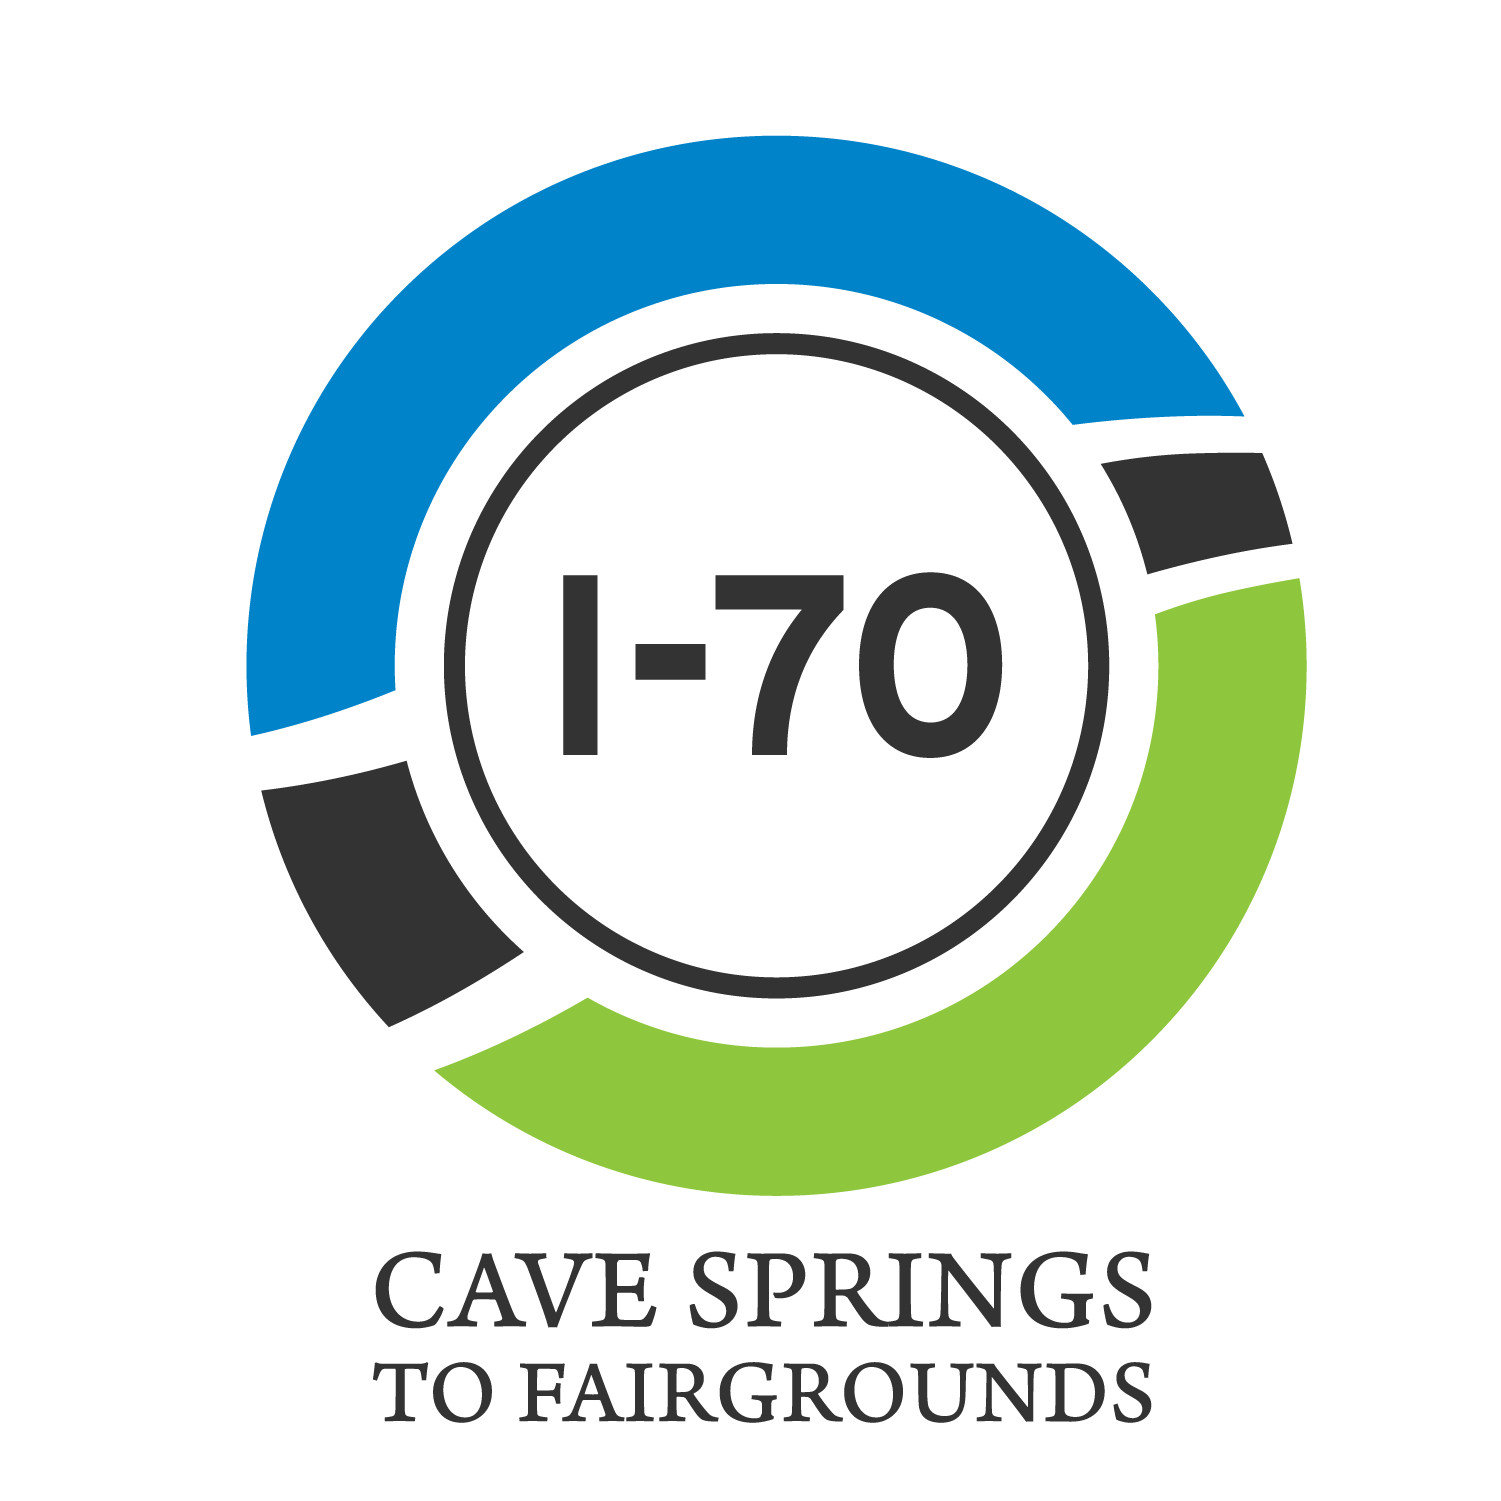 I-70 Corridor Improvements - Cave Springs to Fairgrounds (Convention Center Blvd.)